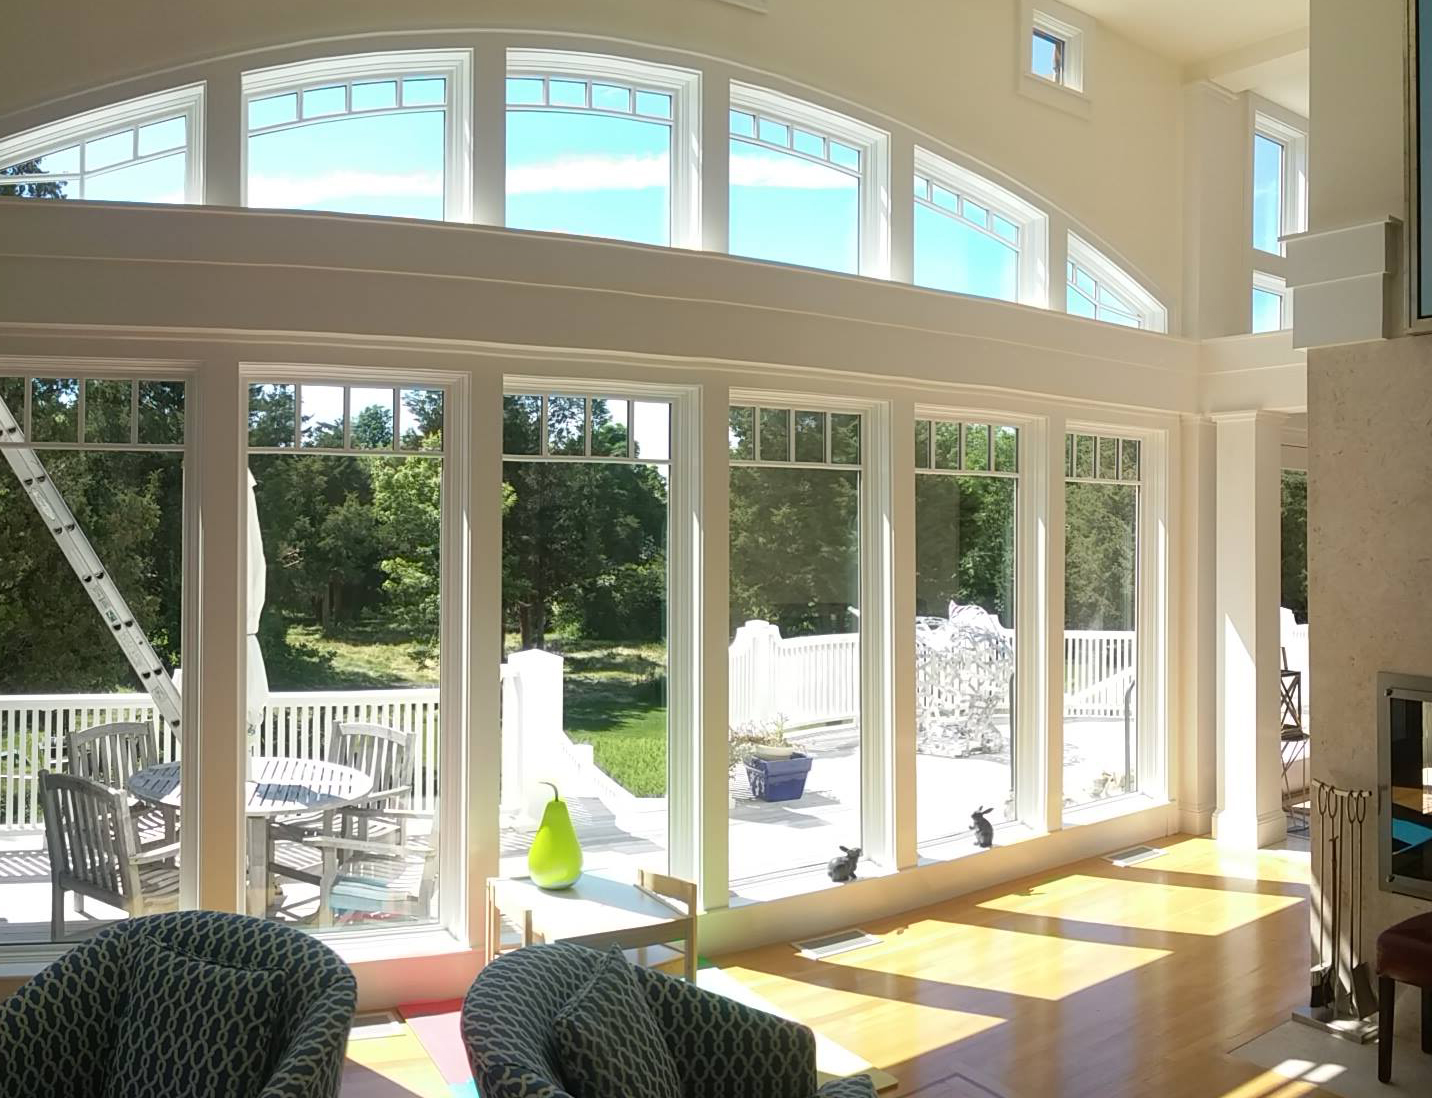 Residential & commercial window cleaning, awning cleaning, ultrasonic blind cleaning, pressure cleaning; Greater Boston, Cape Cod, MA, RI